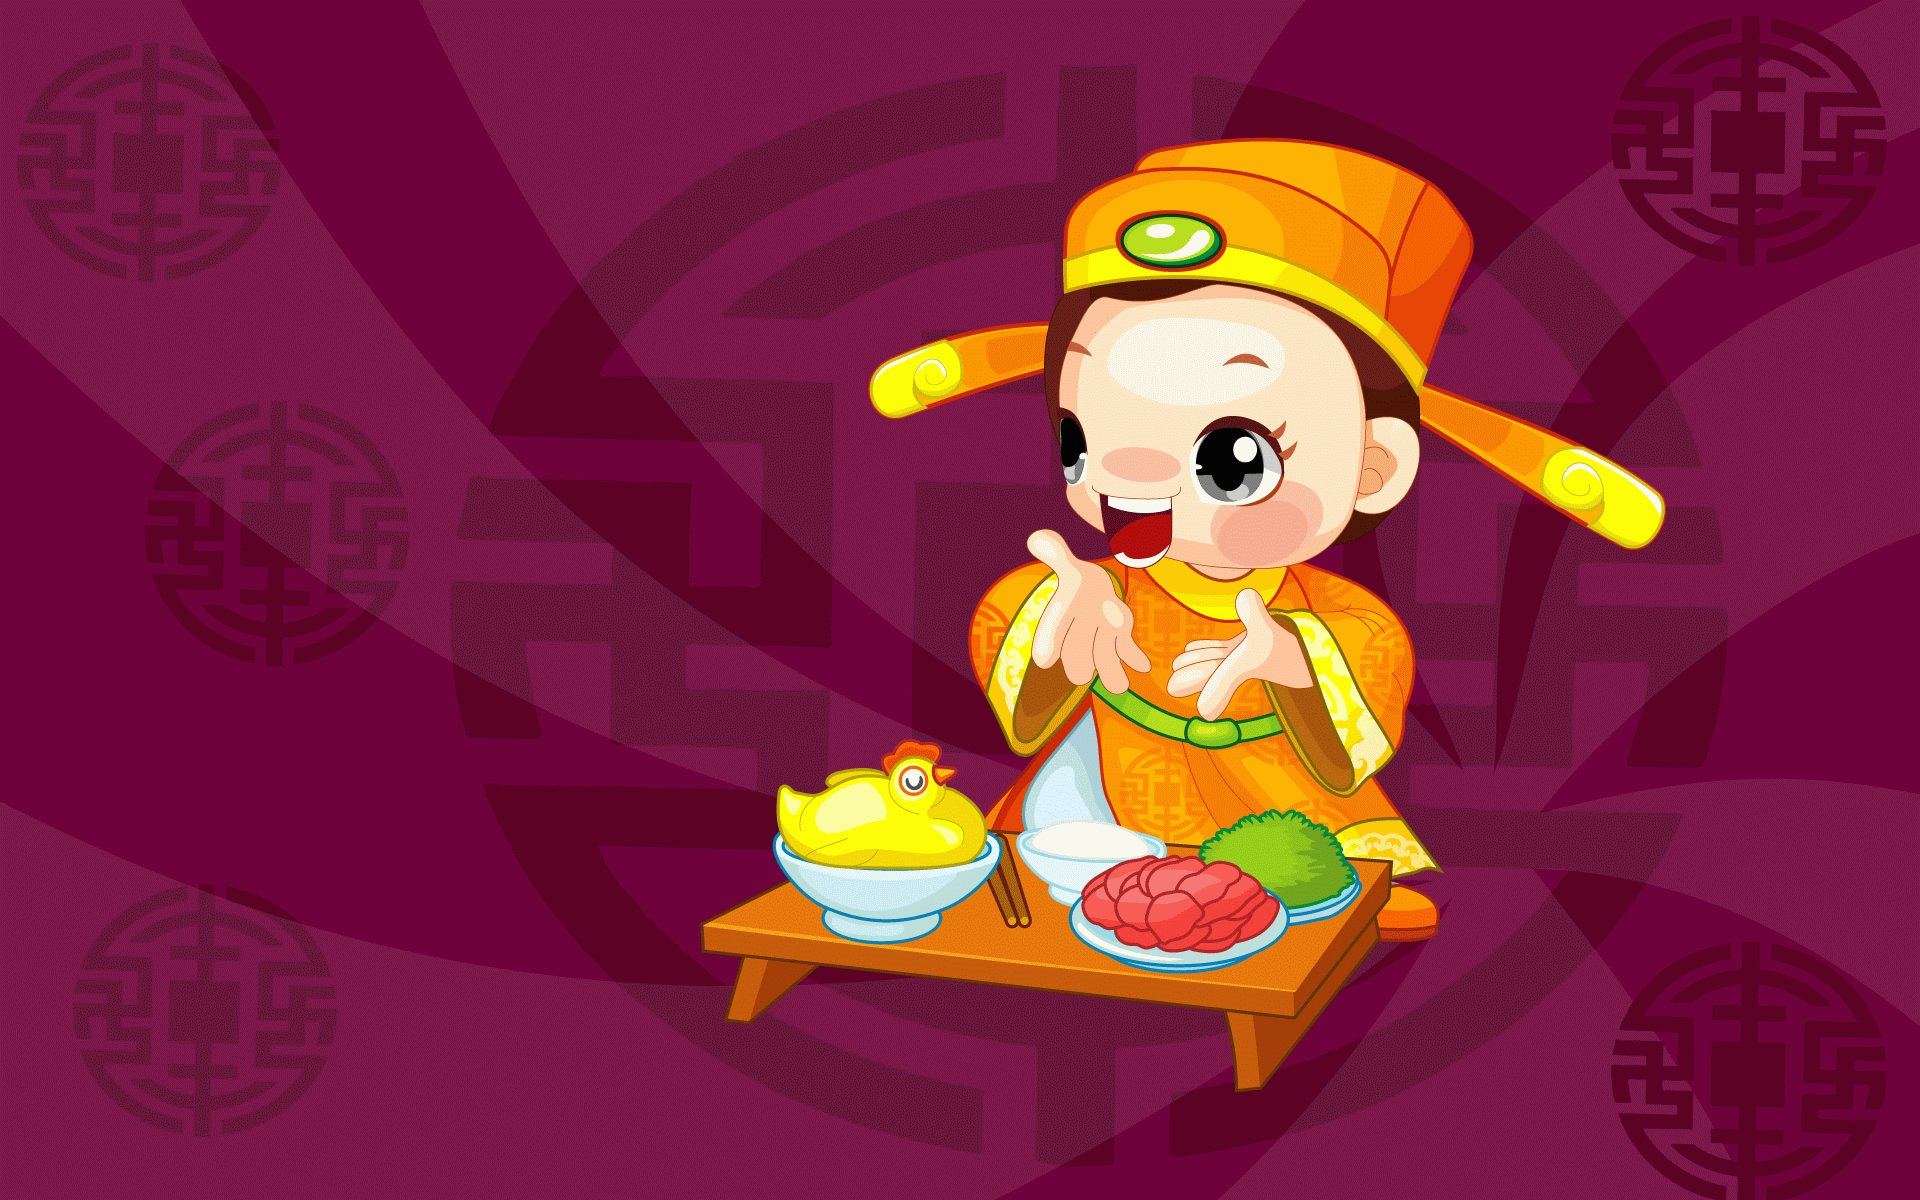 Chinese Style Cartoon Wallpaper5 Cool Wallpapers Wallpaper 1920x1200